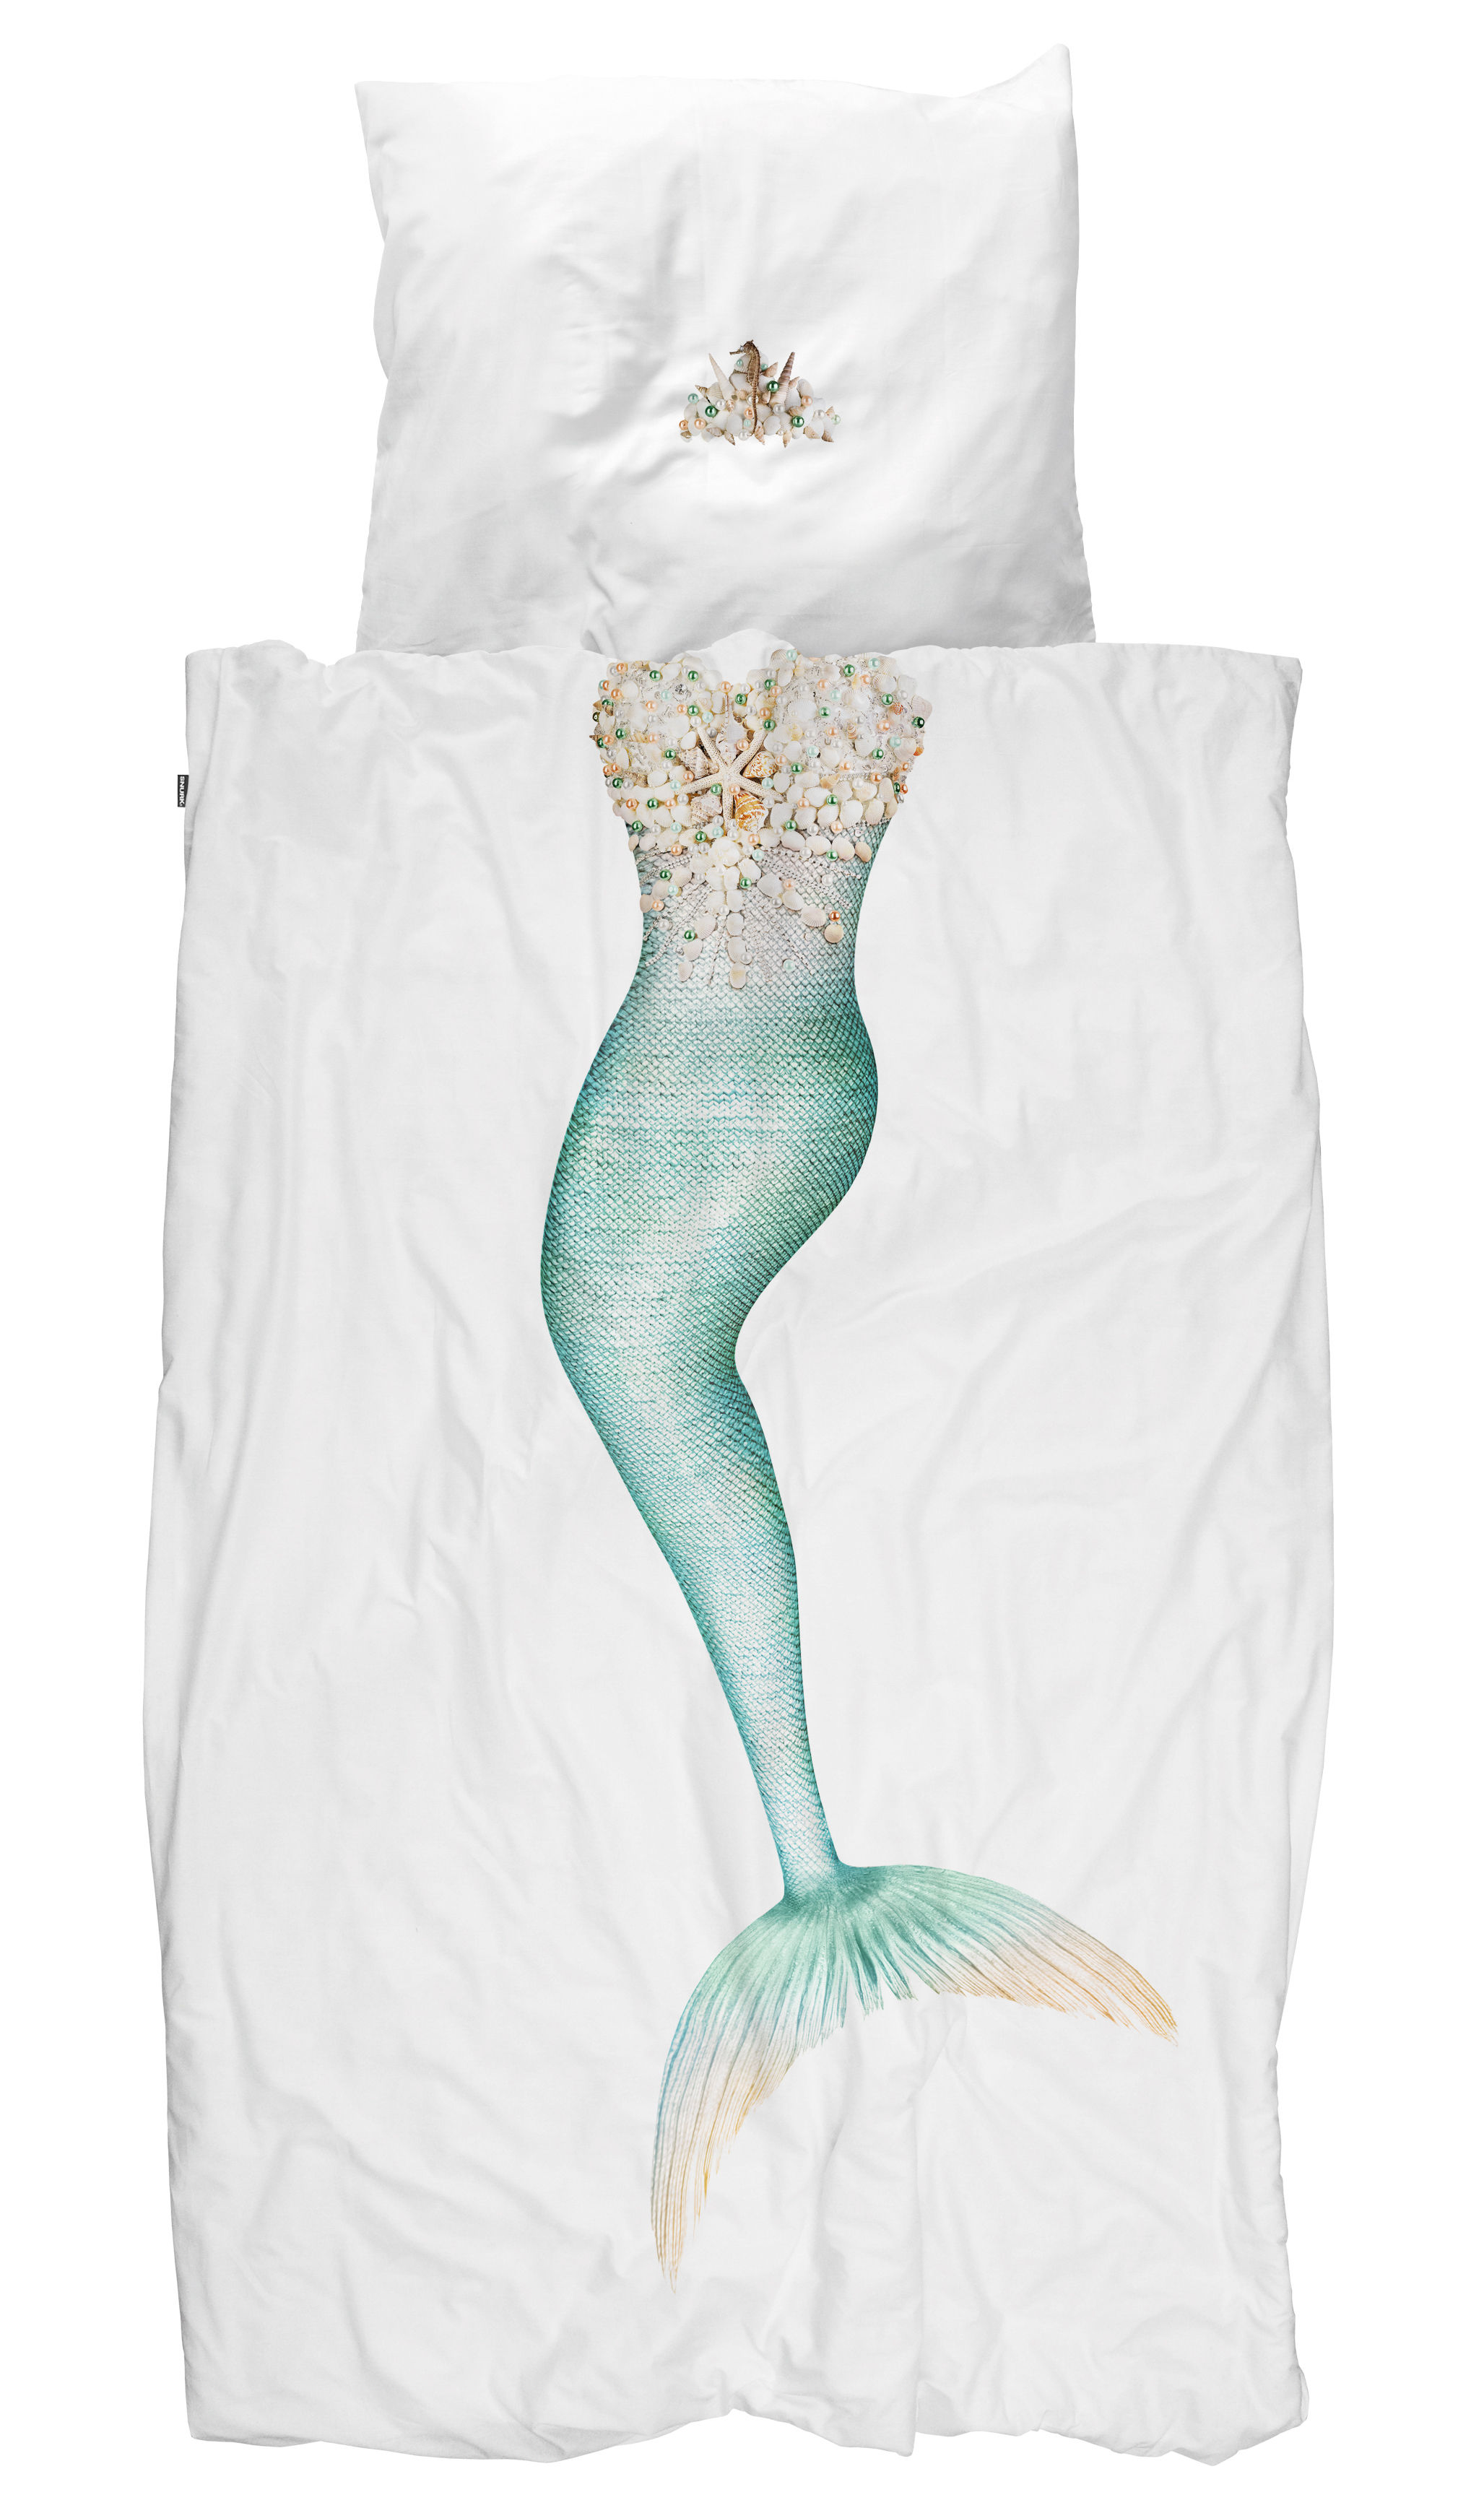 Decoration - Bedding & Bath Towels - Mermaid Bedlinen set for 1 person - 135 x 200 cm by Snurk - Mermaid - Cotton percale